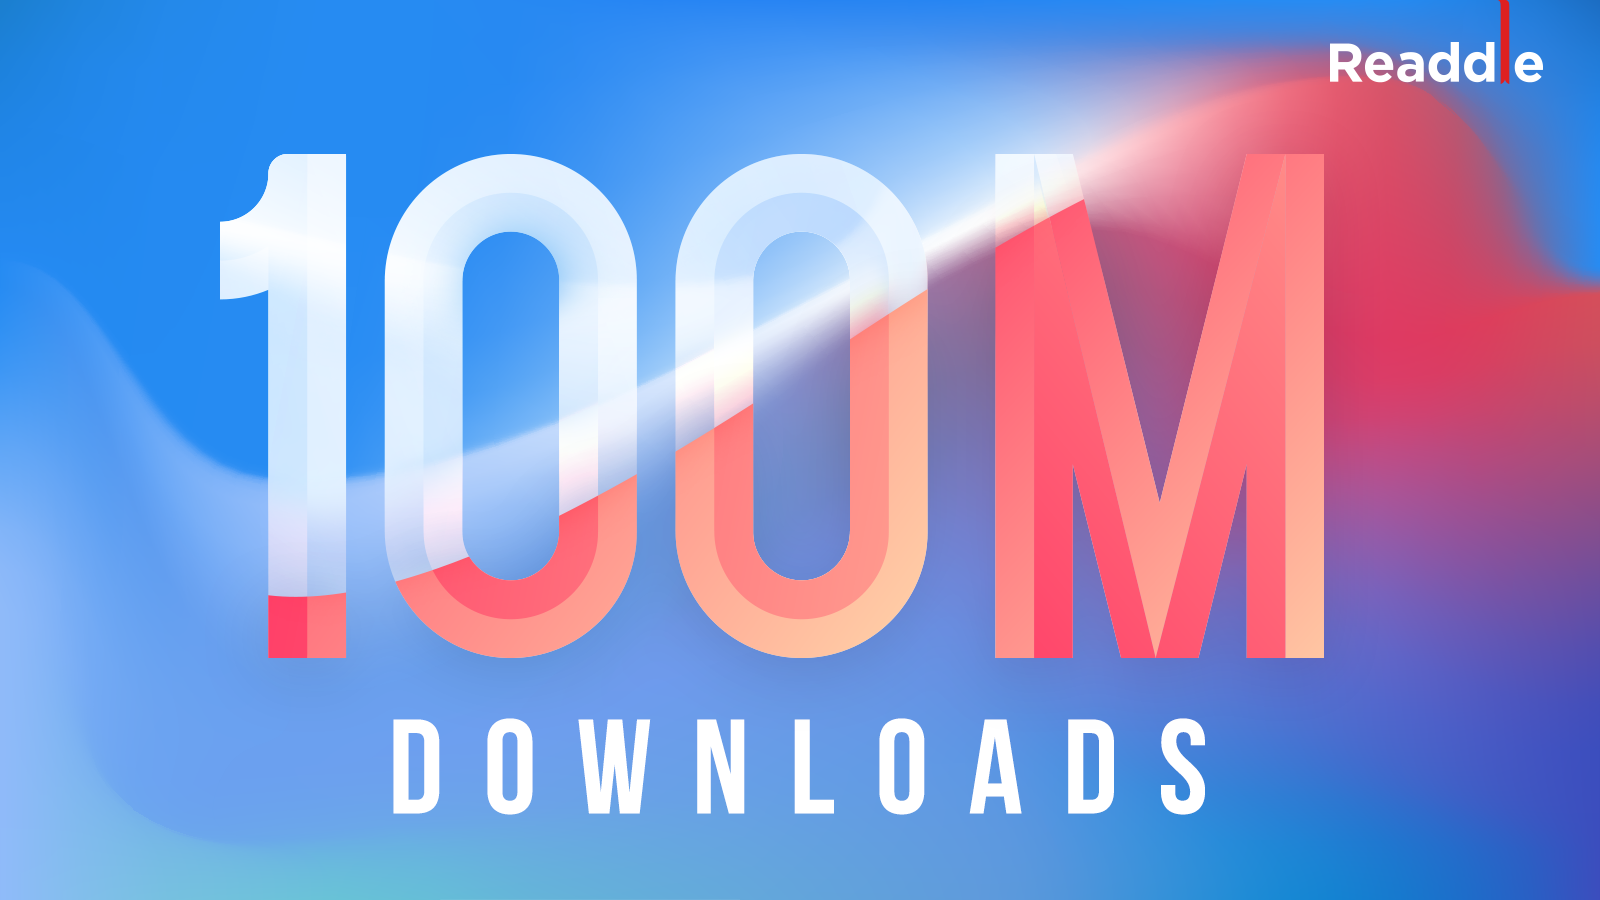 Readdle   100 millions downloads